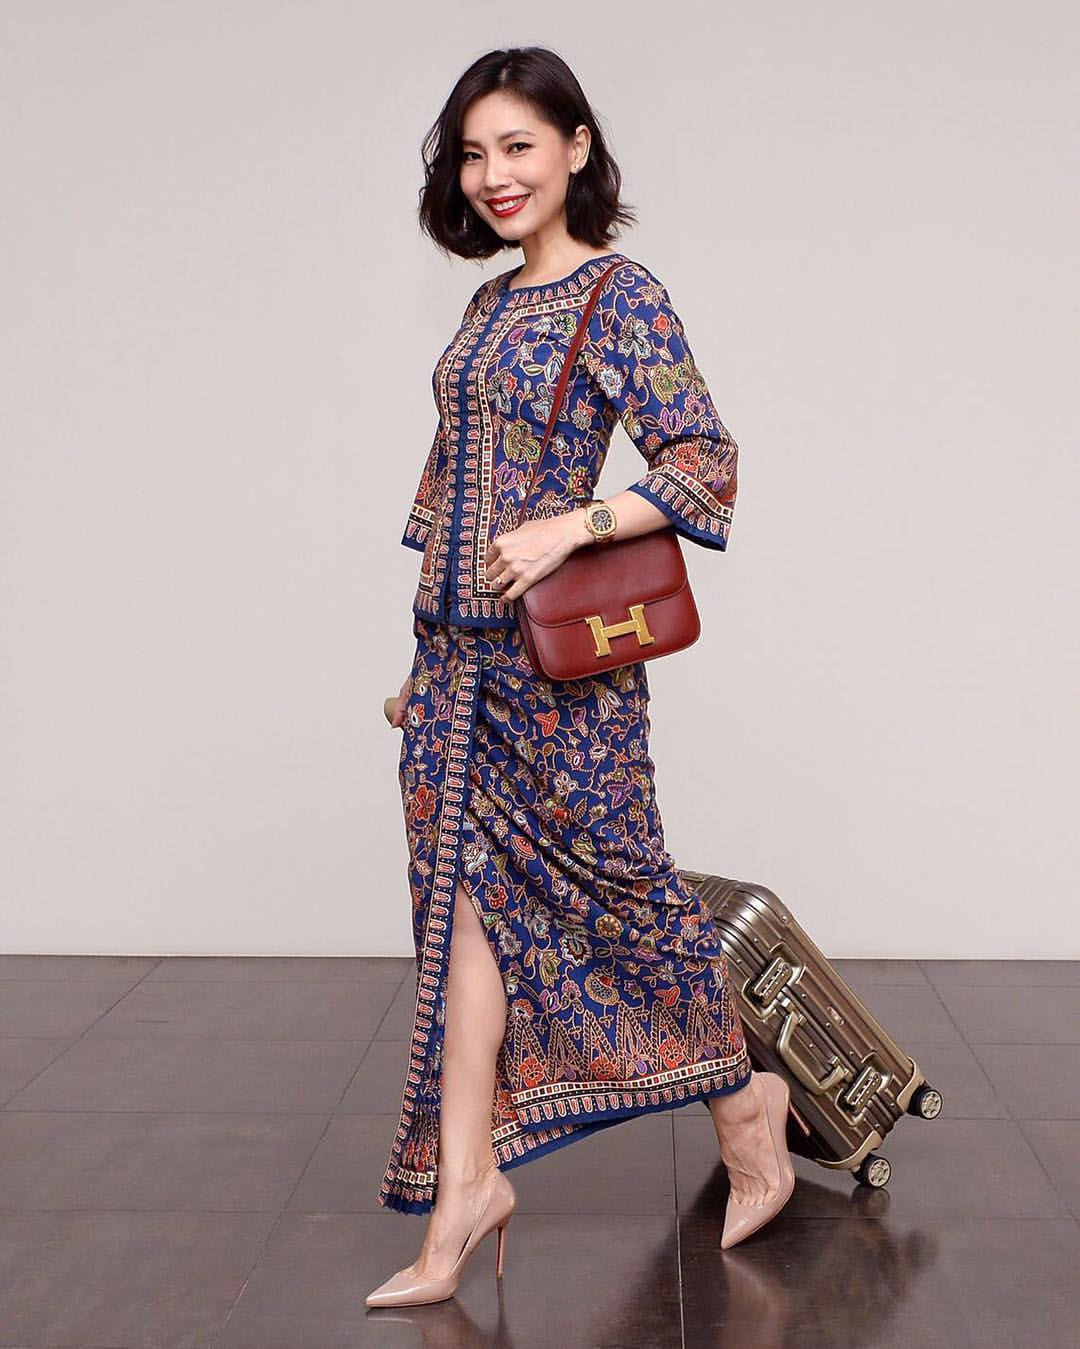 The Singapore Airlines sarong kebaya is special to Au, who was a Singapore Girl for 15 months before she was talent-spotted and quit flying for showbiz.